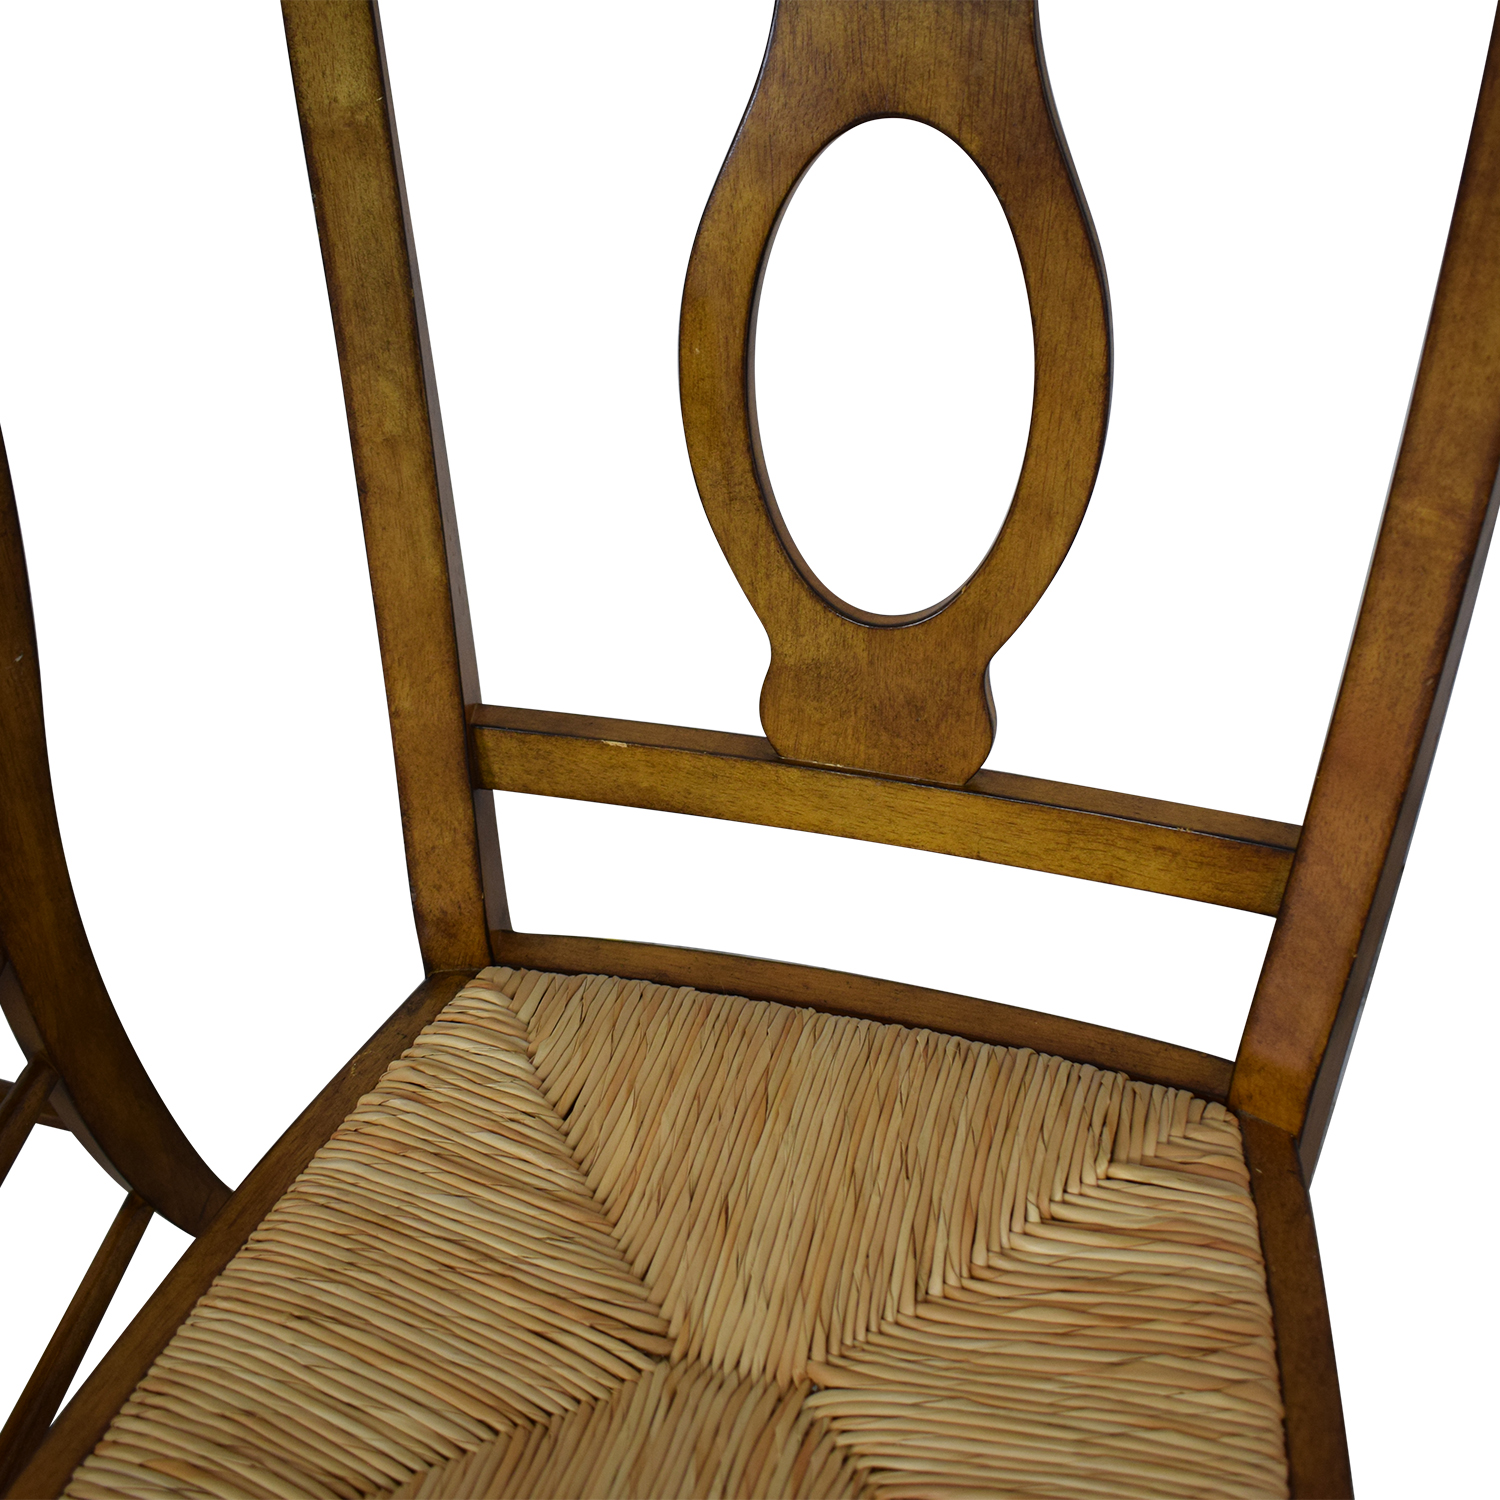 Pottery Barn Pottery Barn Dining Chairs second hand